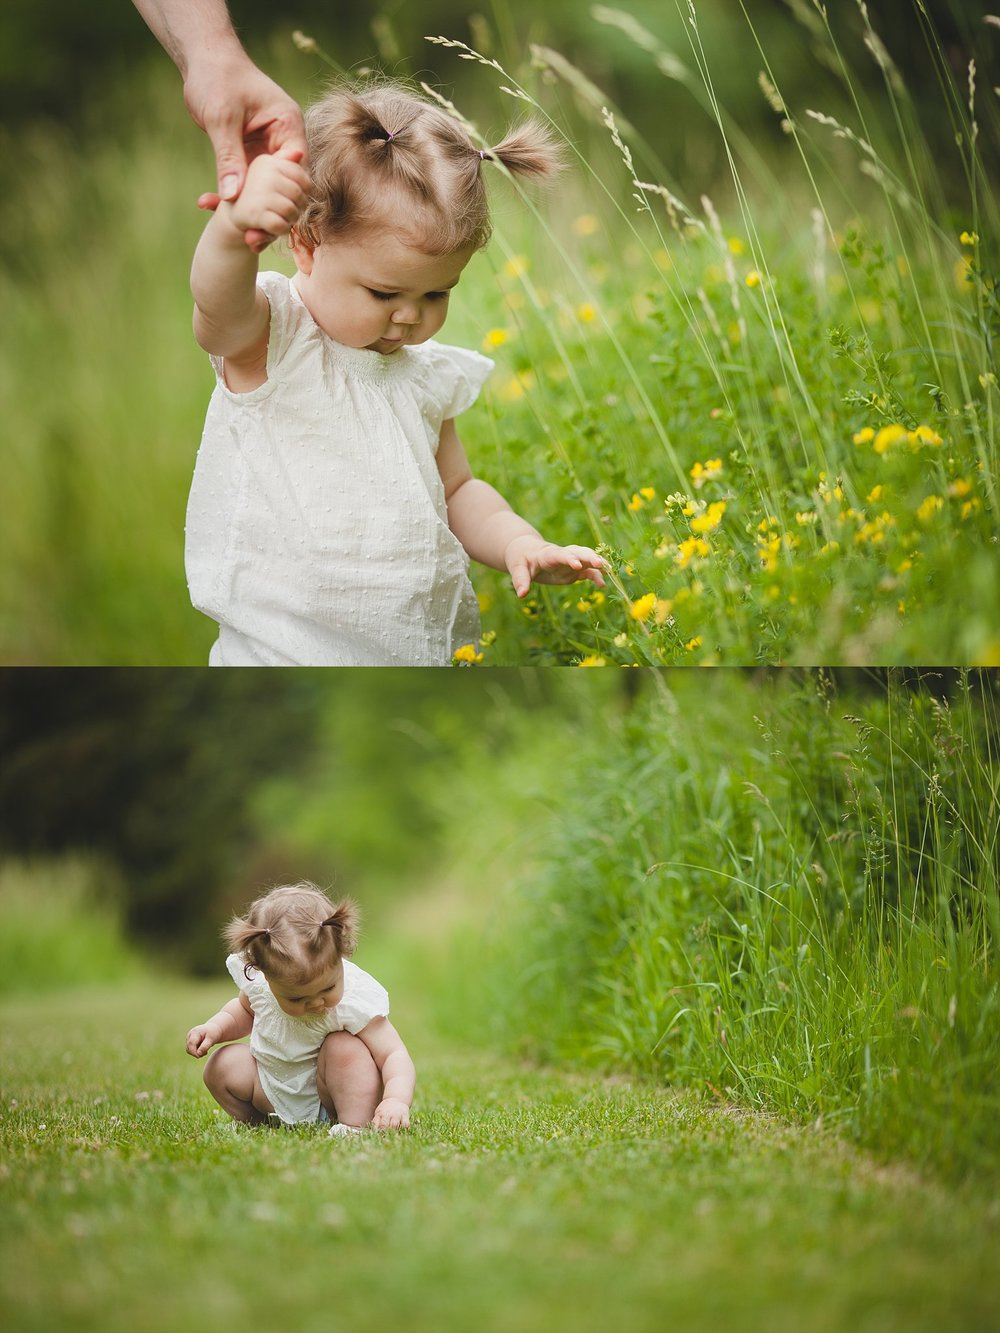 Cute image of one year old baby playing in the grass.